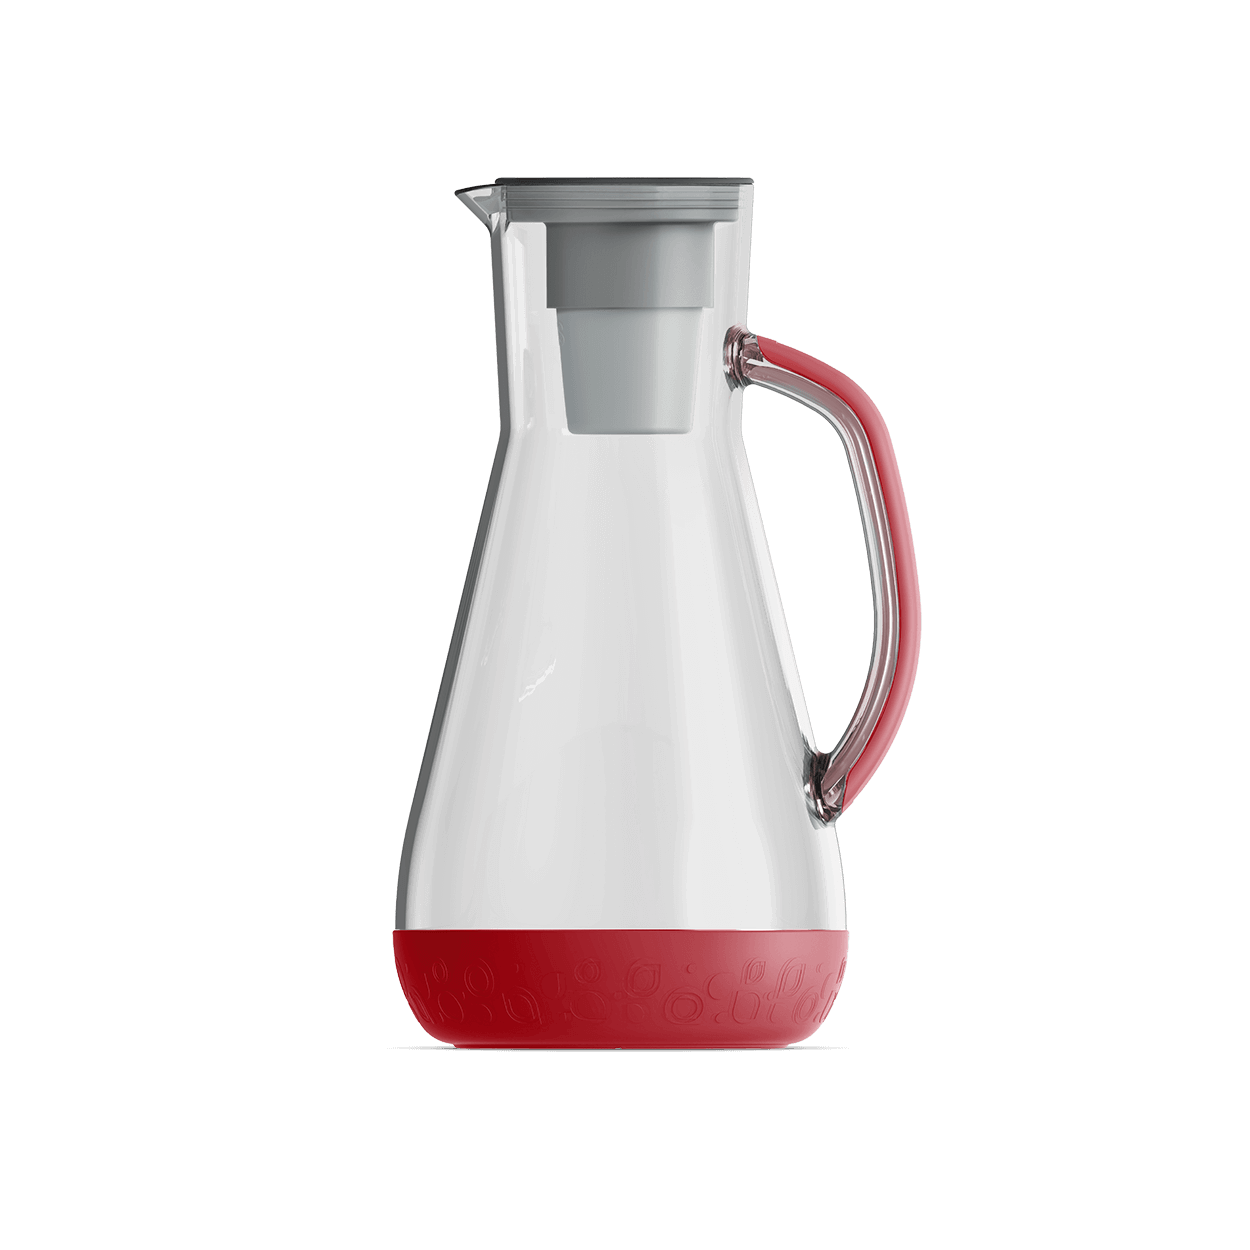 Water filter pitcher Great Value 64 Oz Pitcher Red With Filter Hydros Water Filter Pitcher Buy Pitcher Water Filters Online Hydros